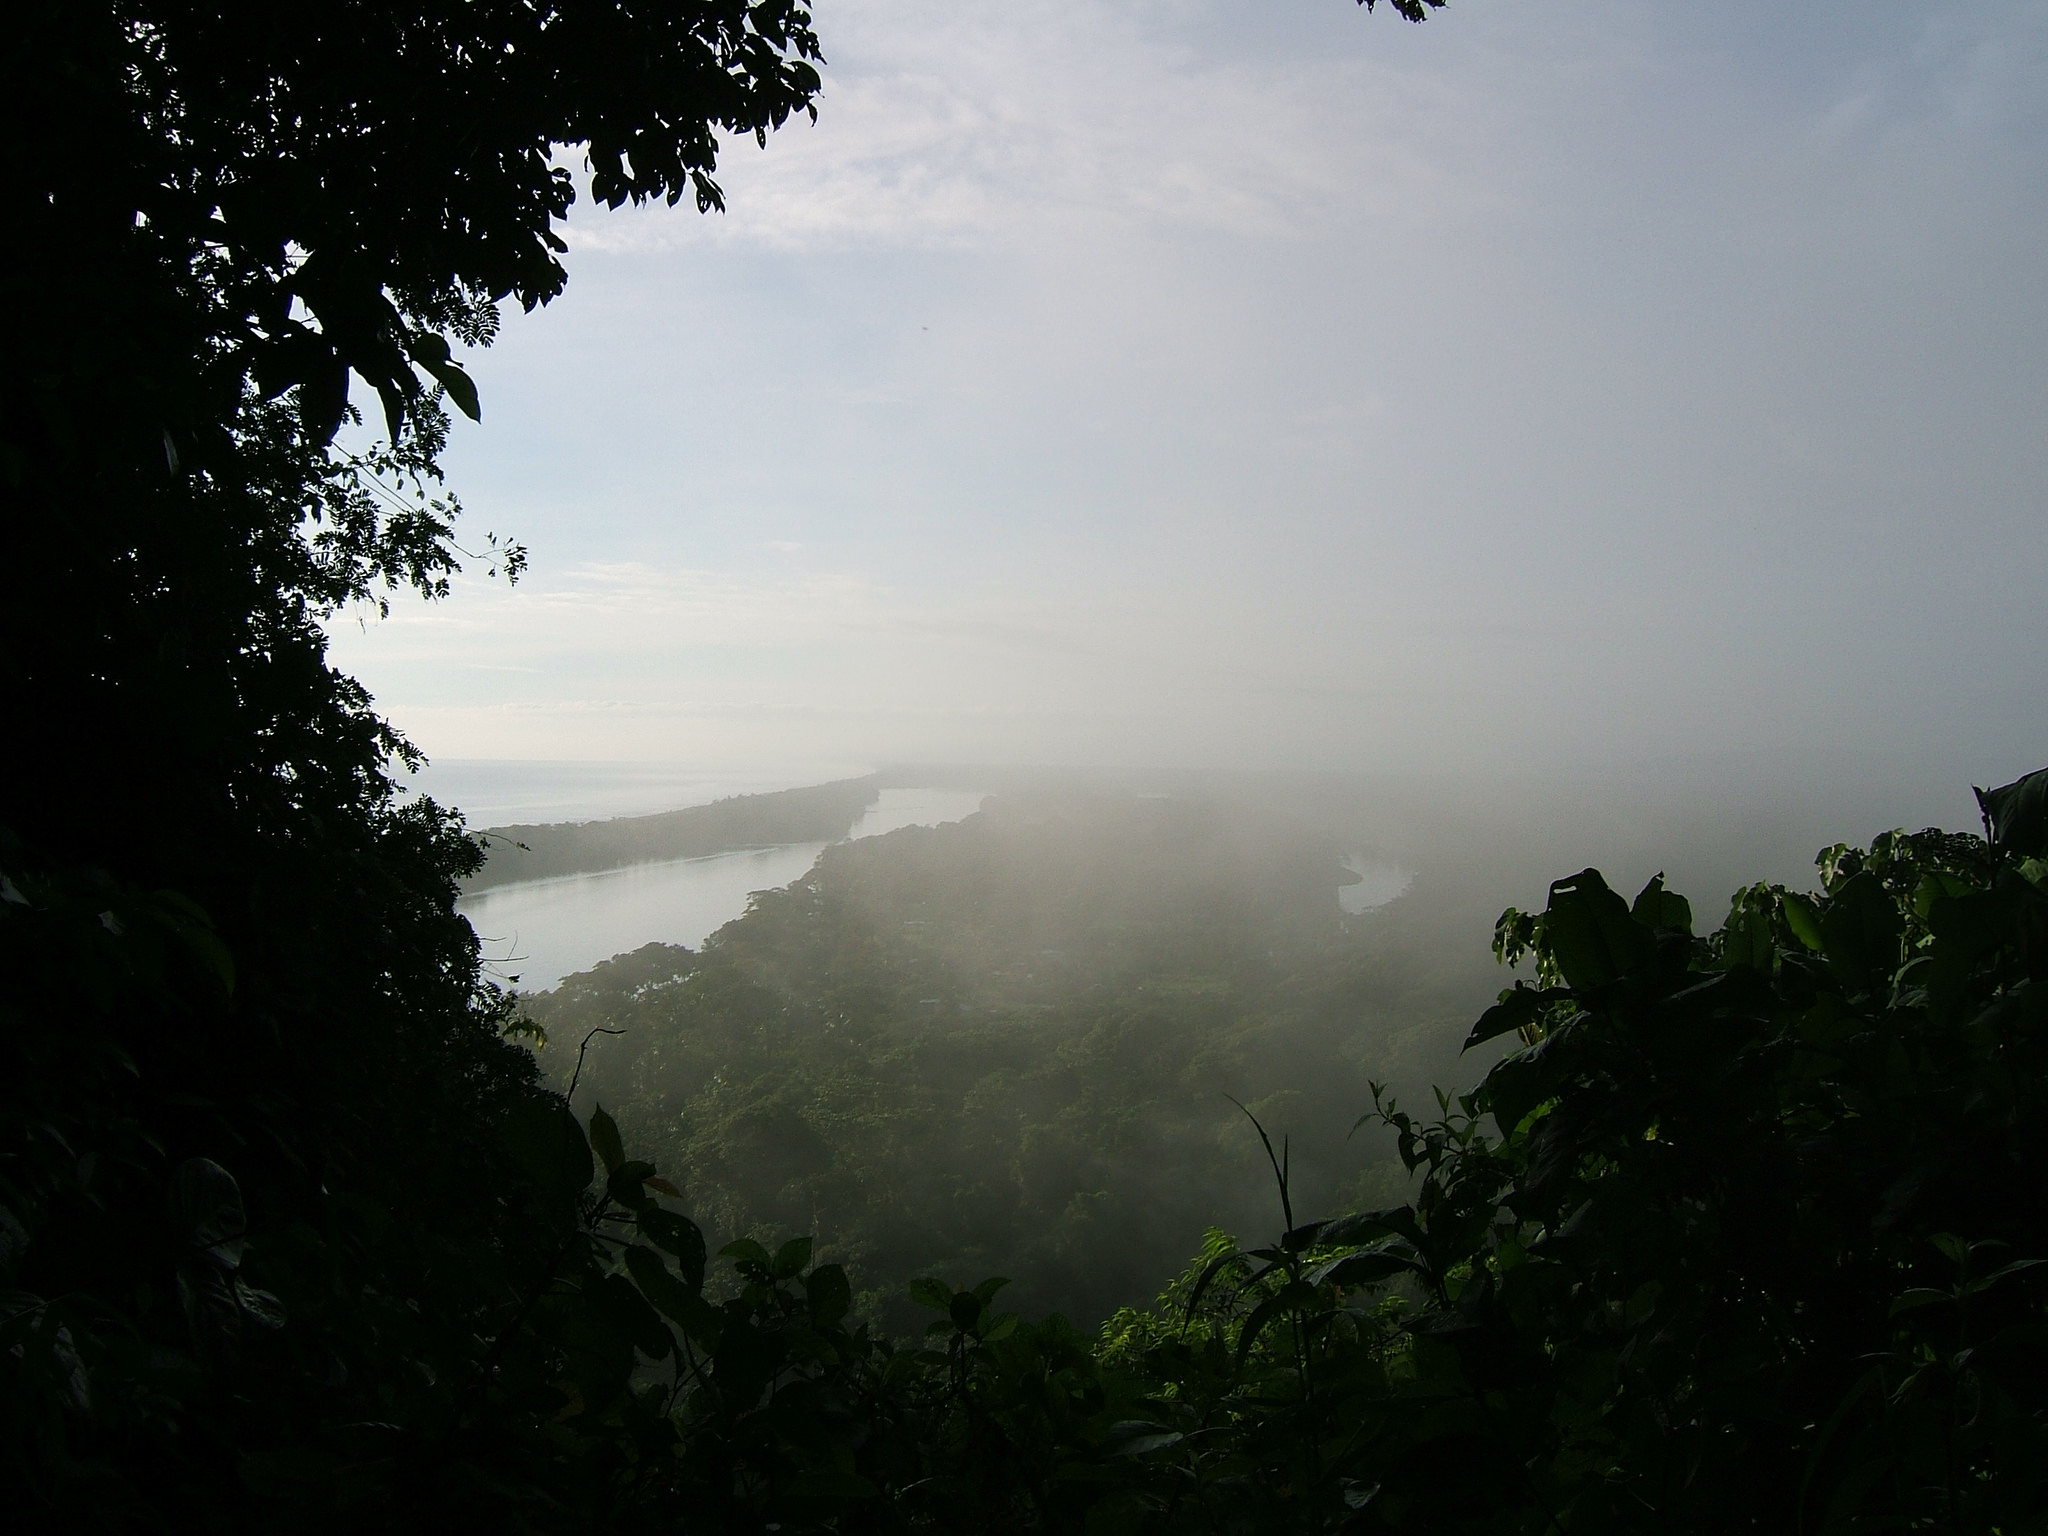 Jalova is one of our top 10 locations for conservation volunteering